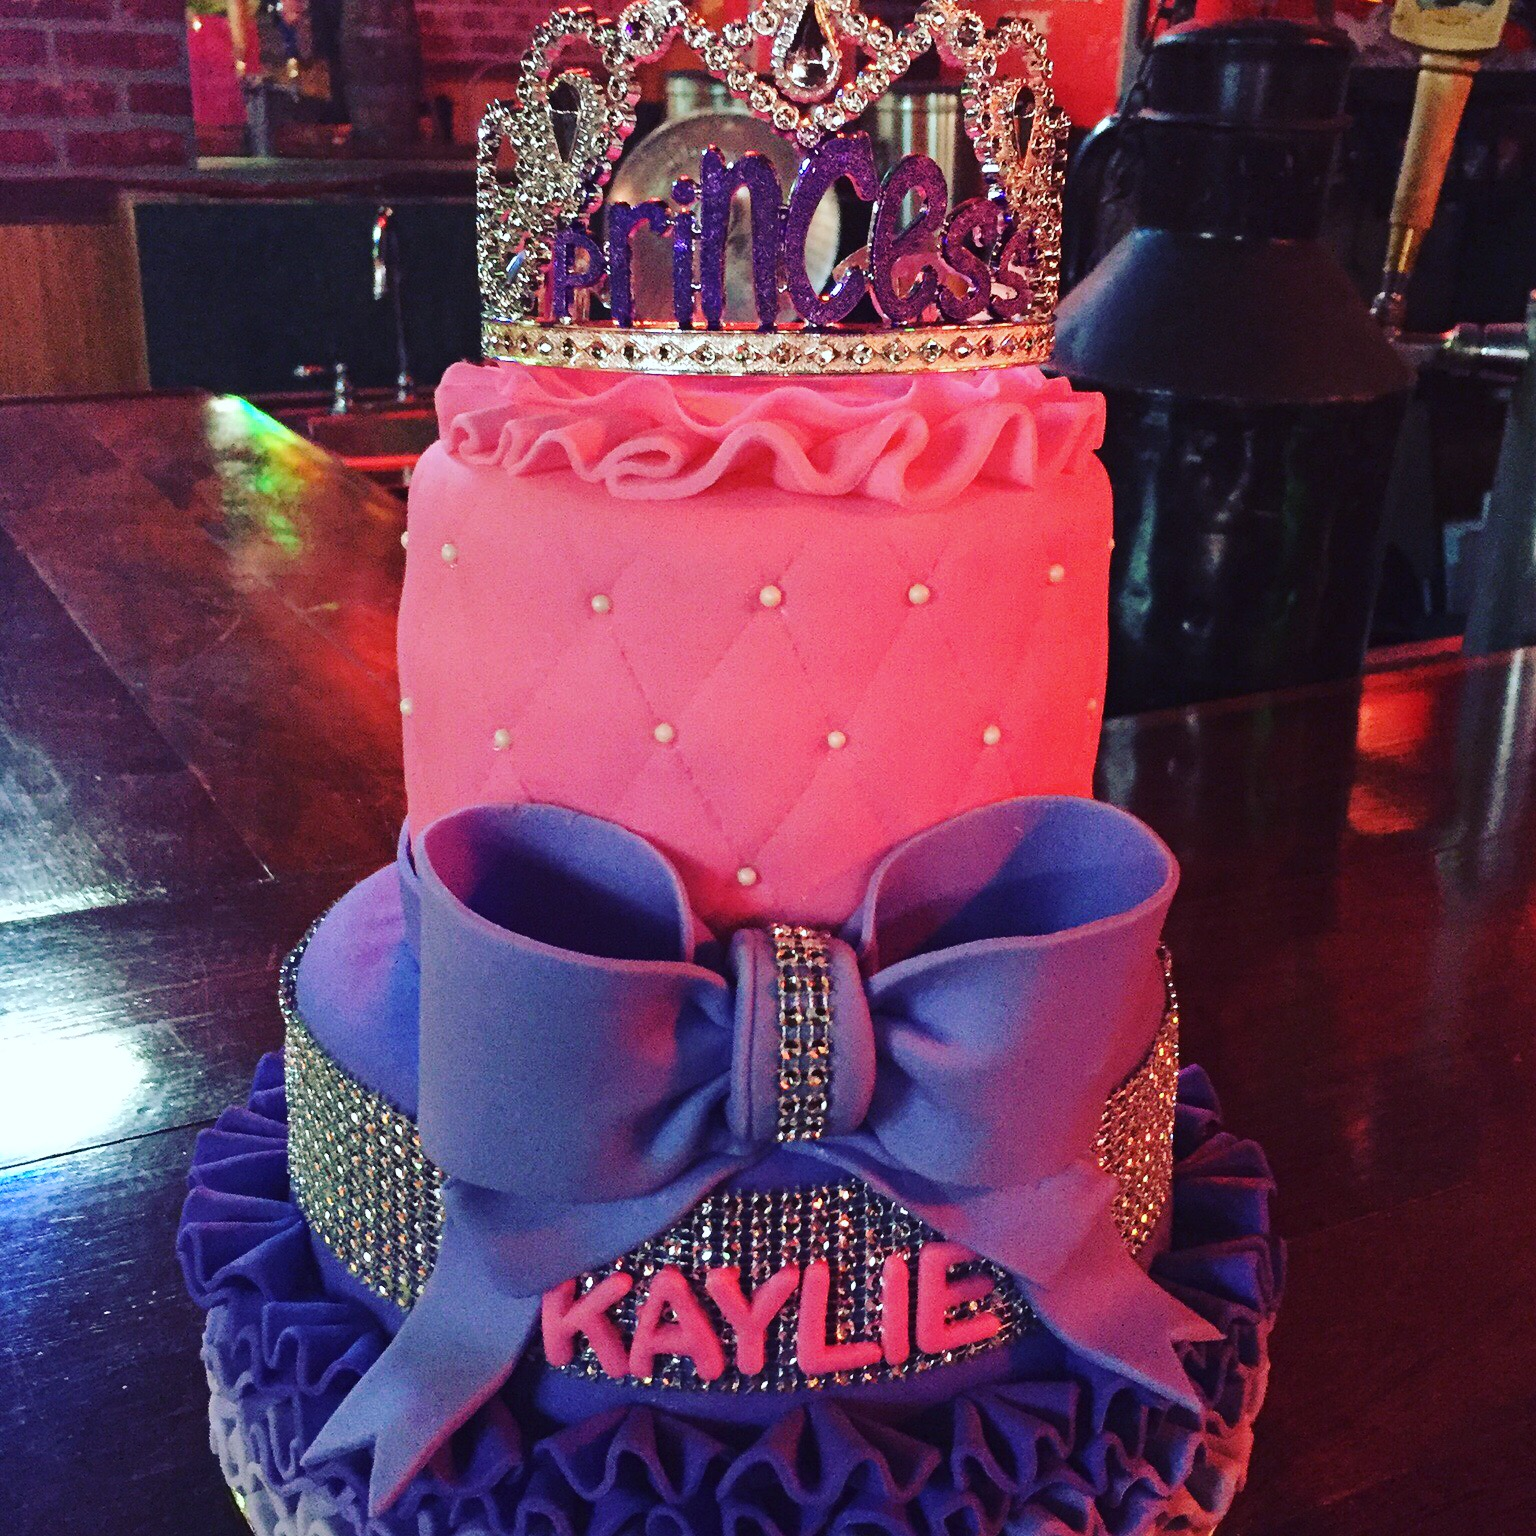 Princess bling cake